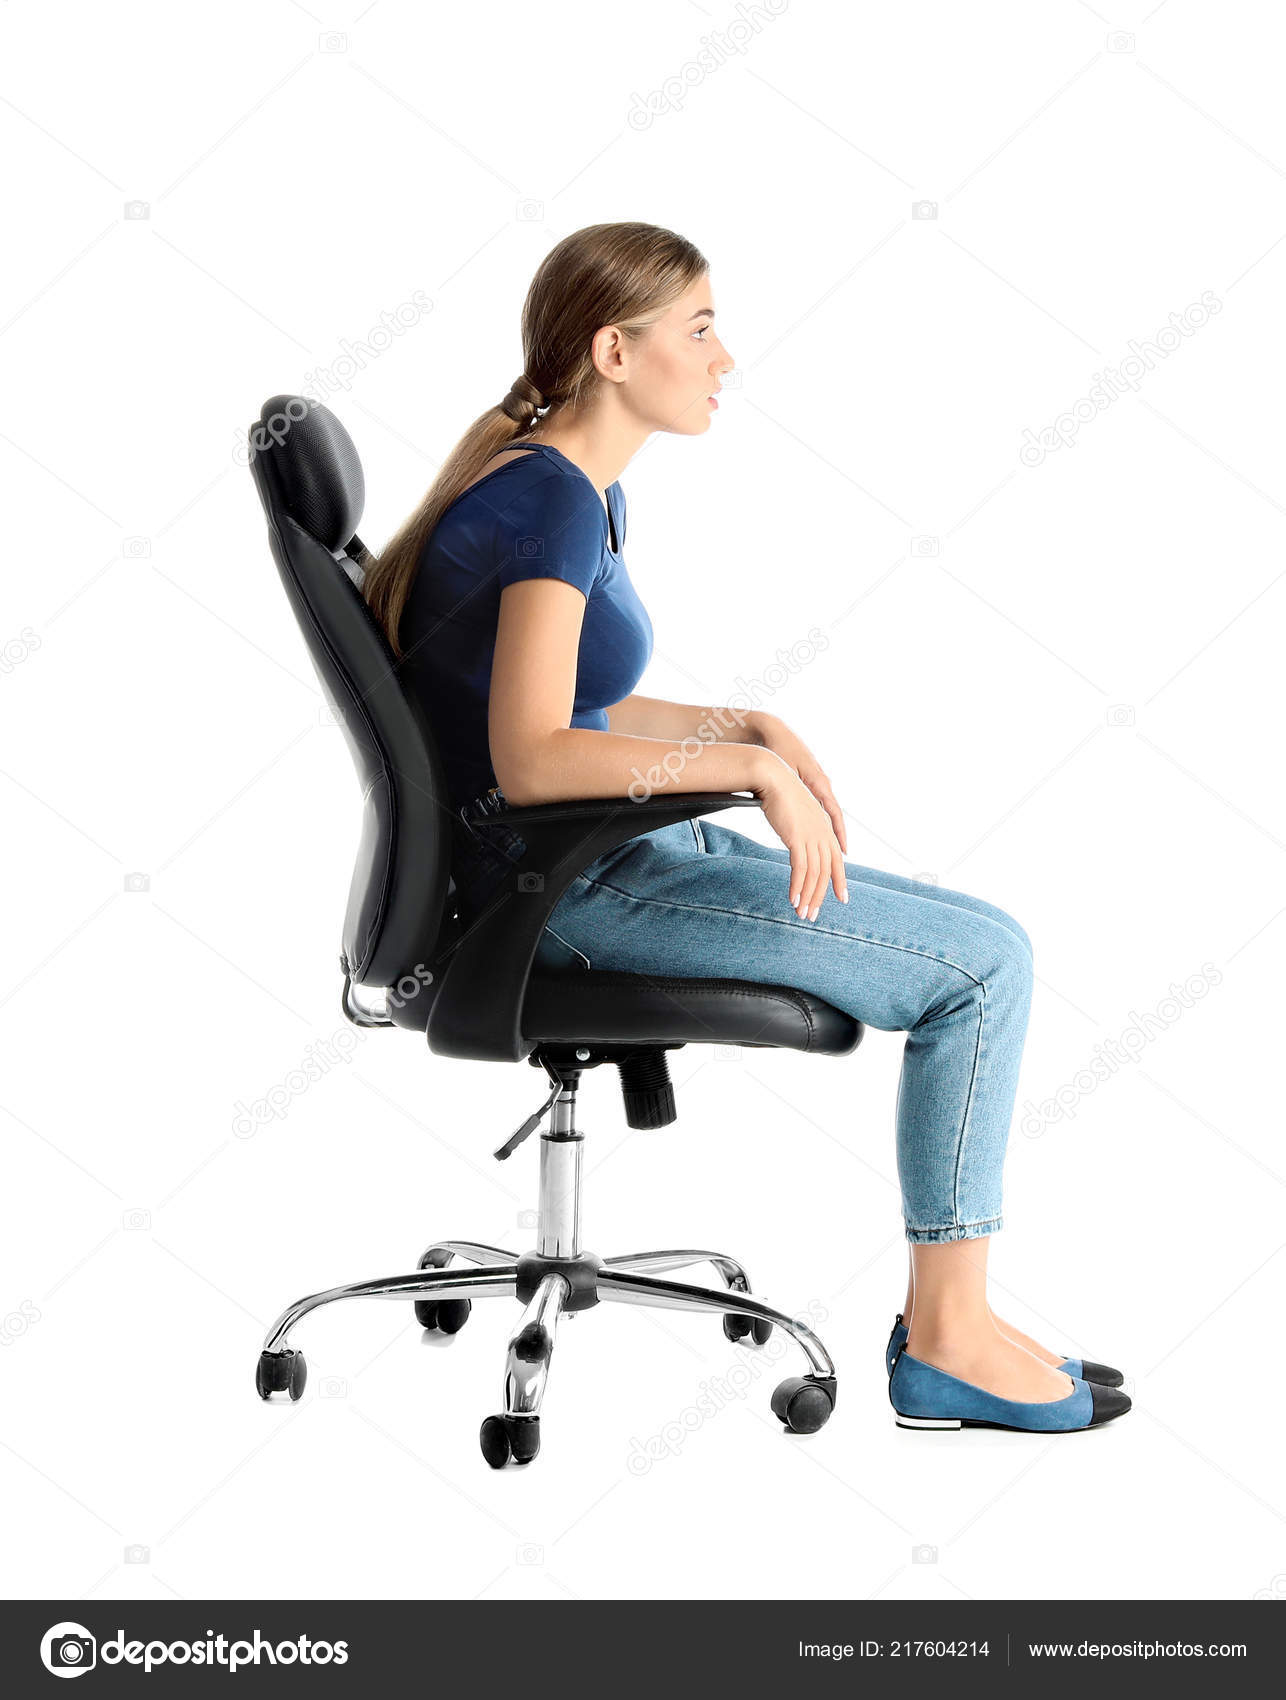 Tremendous Woman Sitting Office Chair White Background Posture Concept Caraccident5 Cool Chair Designs And Ideas Caraccident5Info